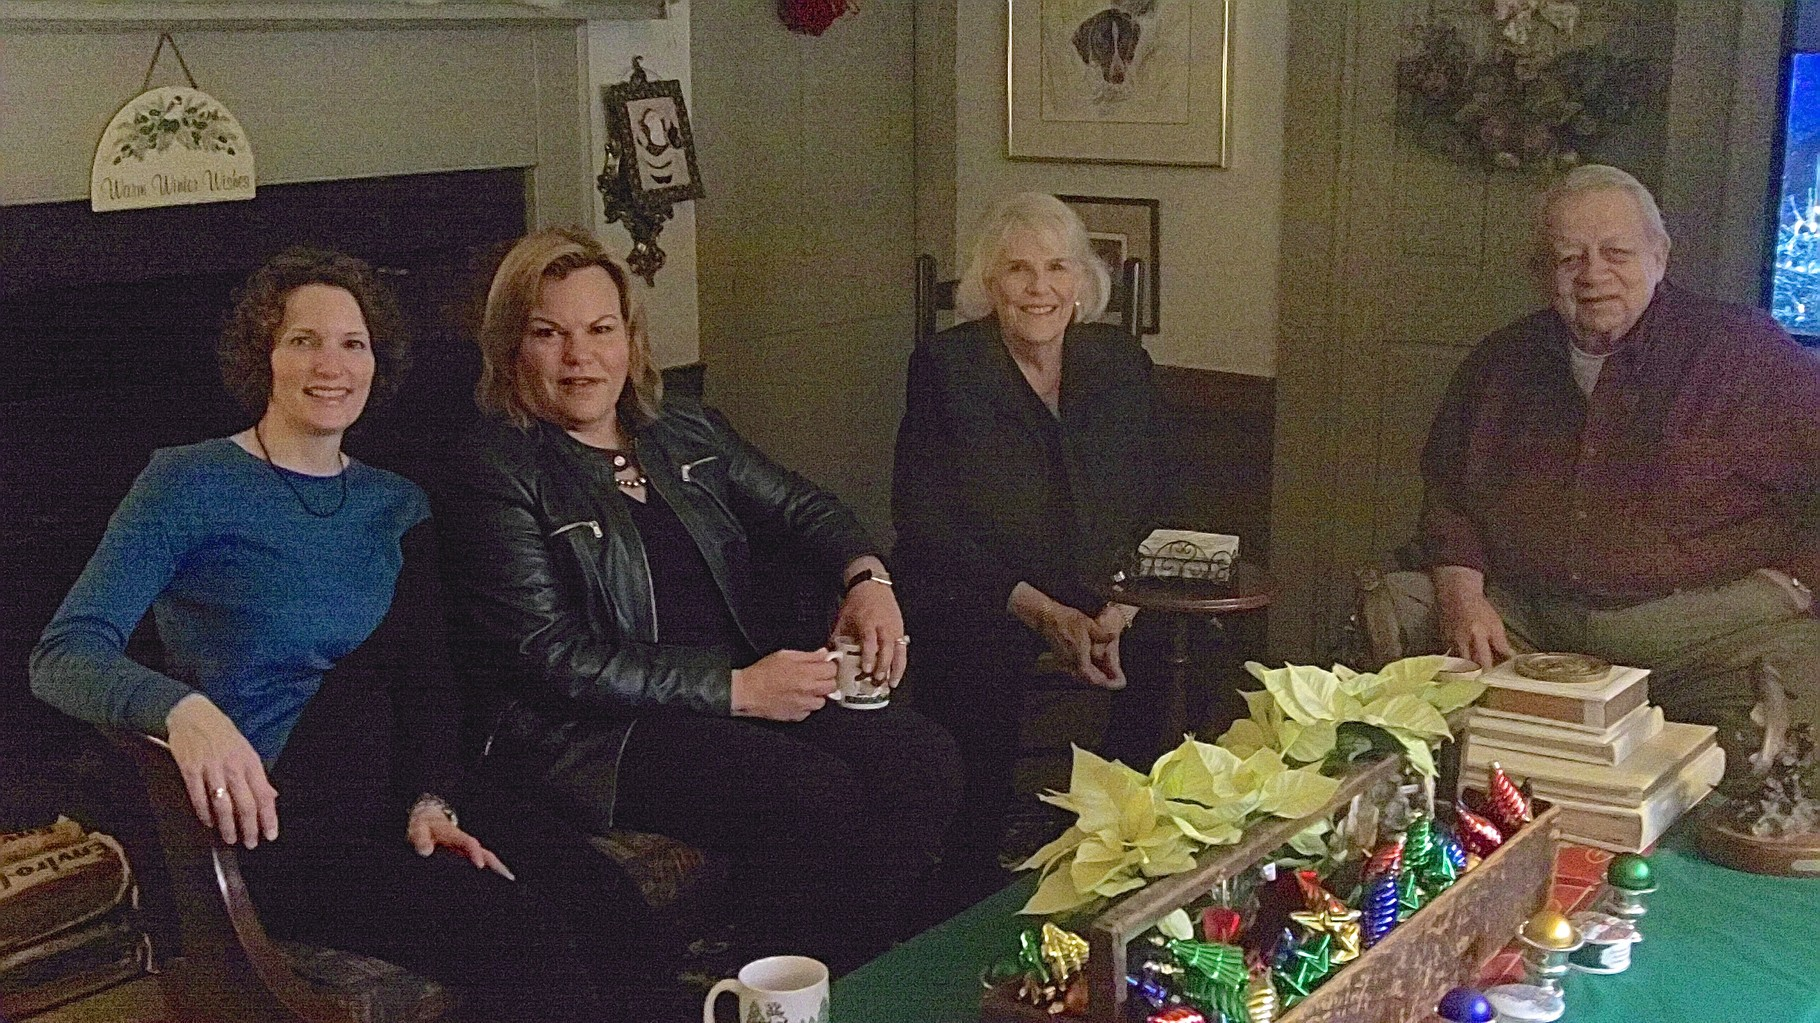 Lisa, Celeste, Jane and Colin Kagel at the inn, Dec. 13, 2015